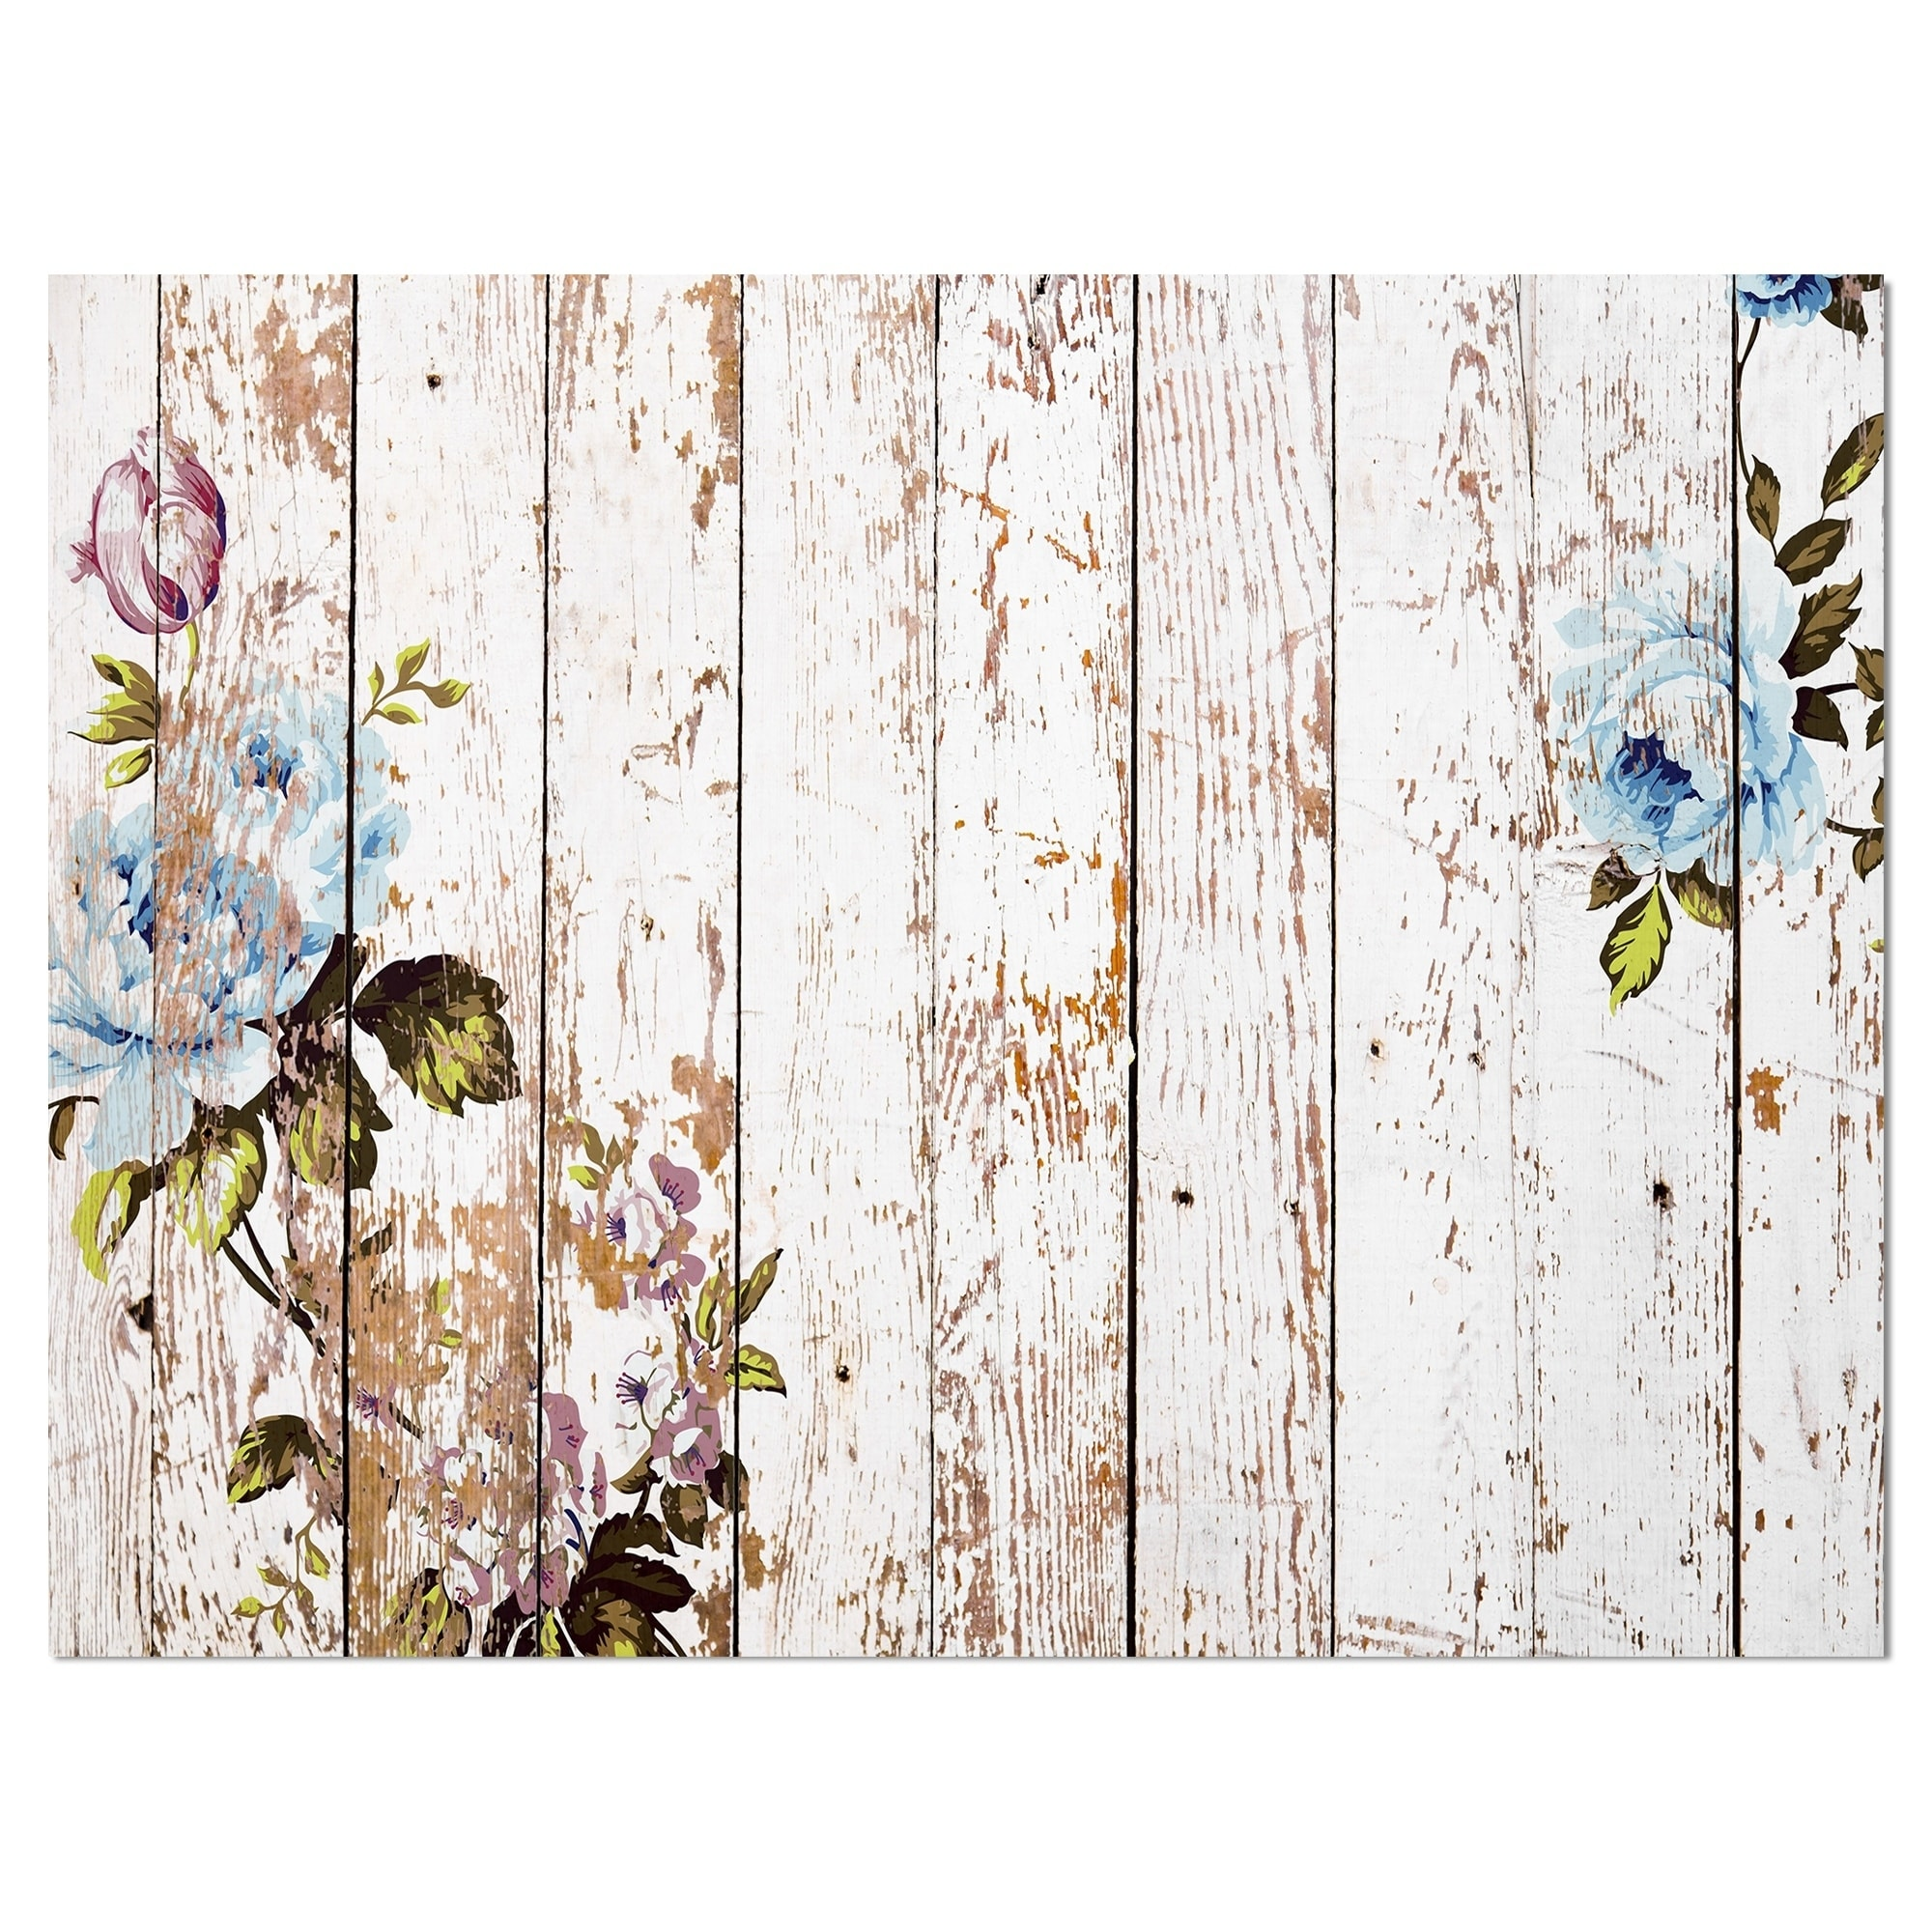 Bad Shabby Chic Designart Shabby Chic Roses On Wooden Texture Farmhouse Painting Print On Wrapped Canvas White